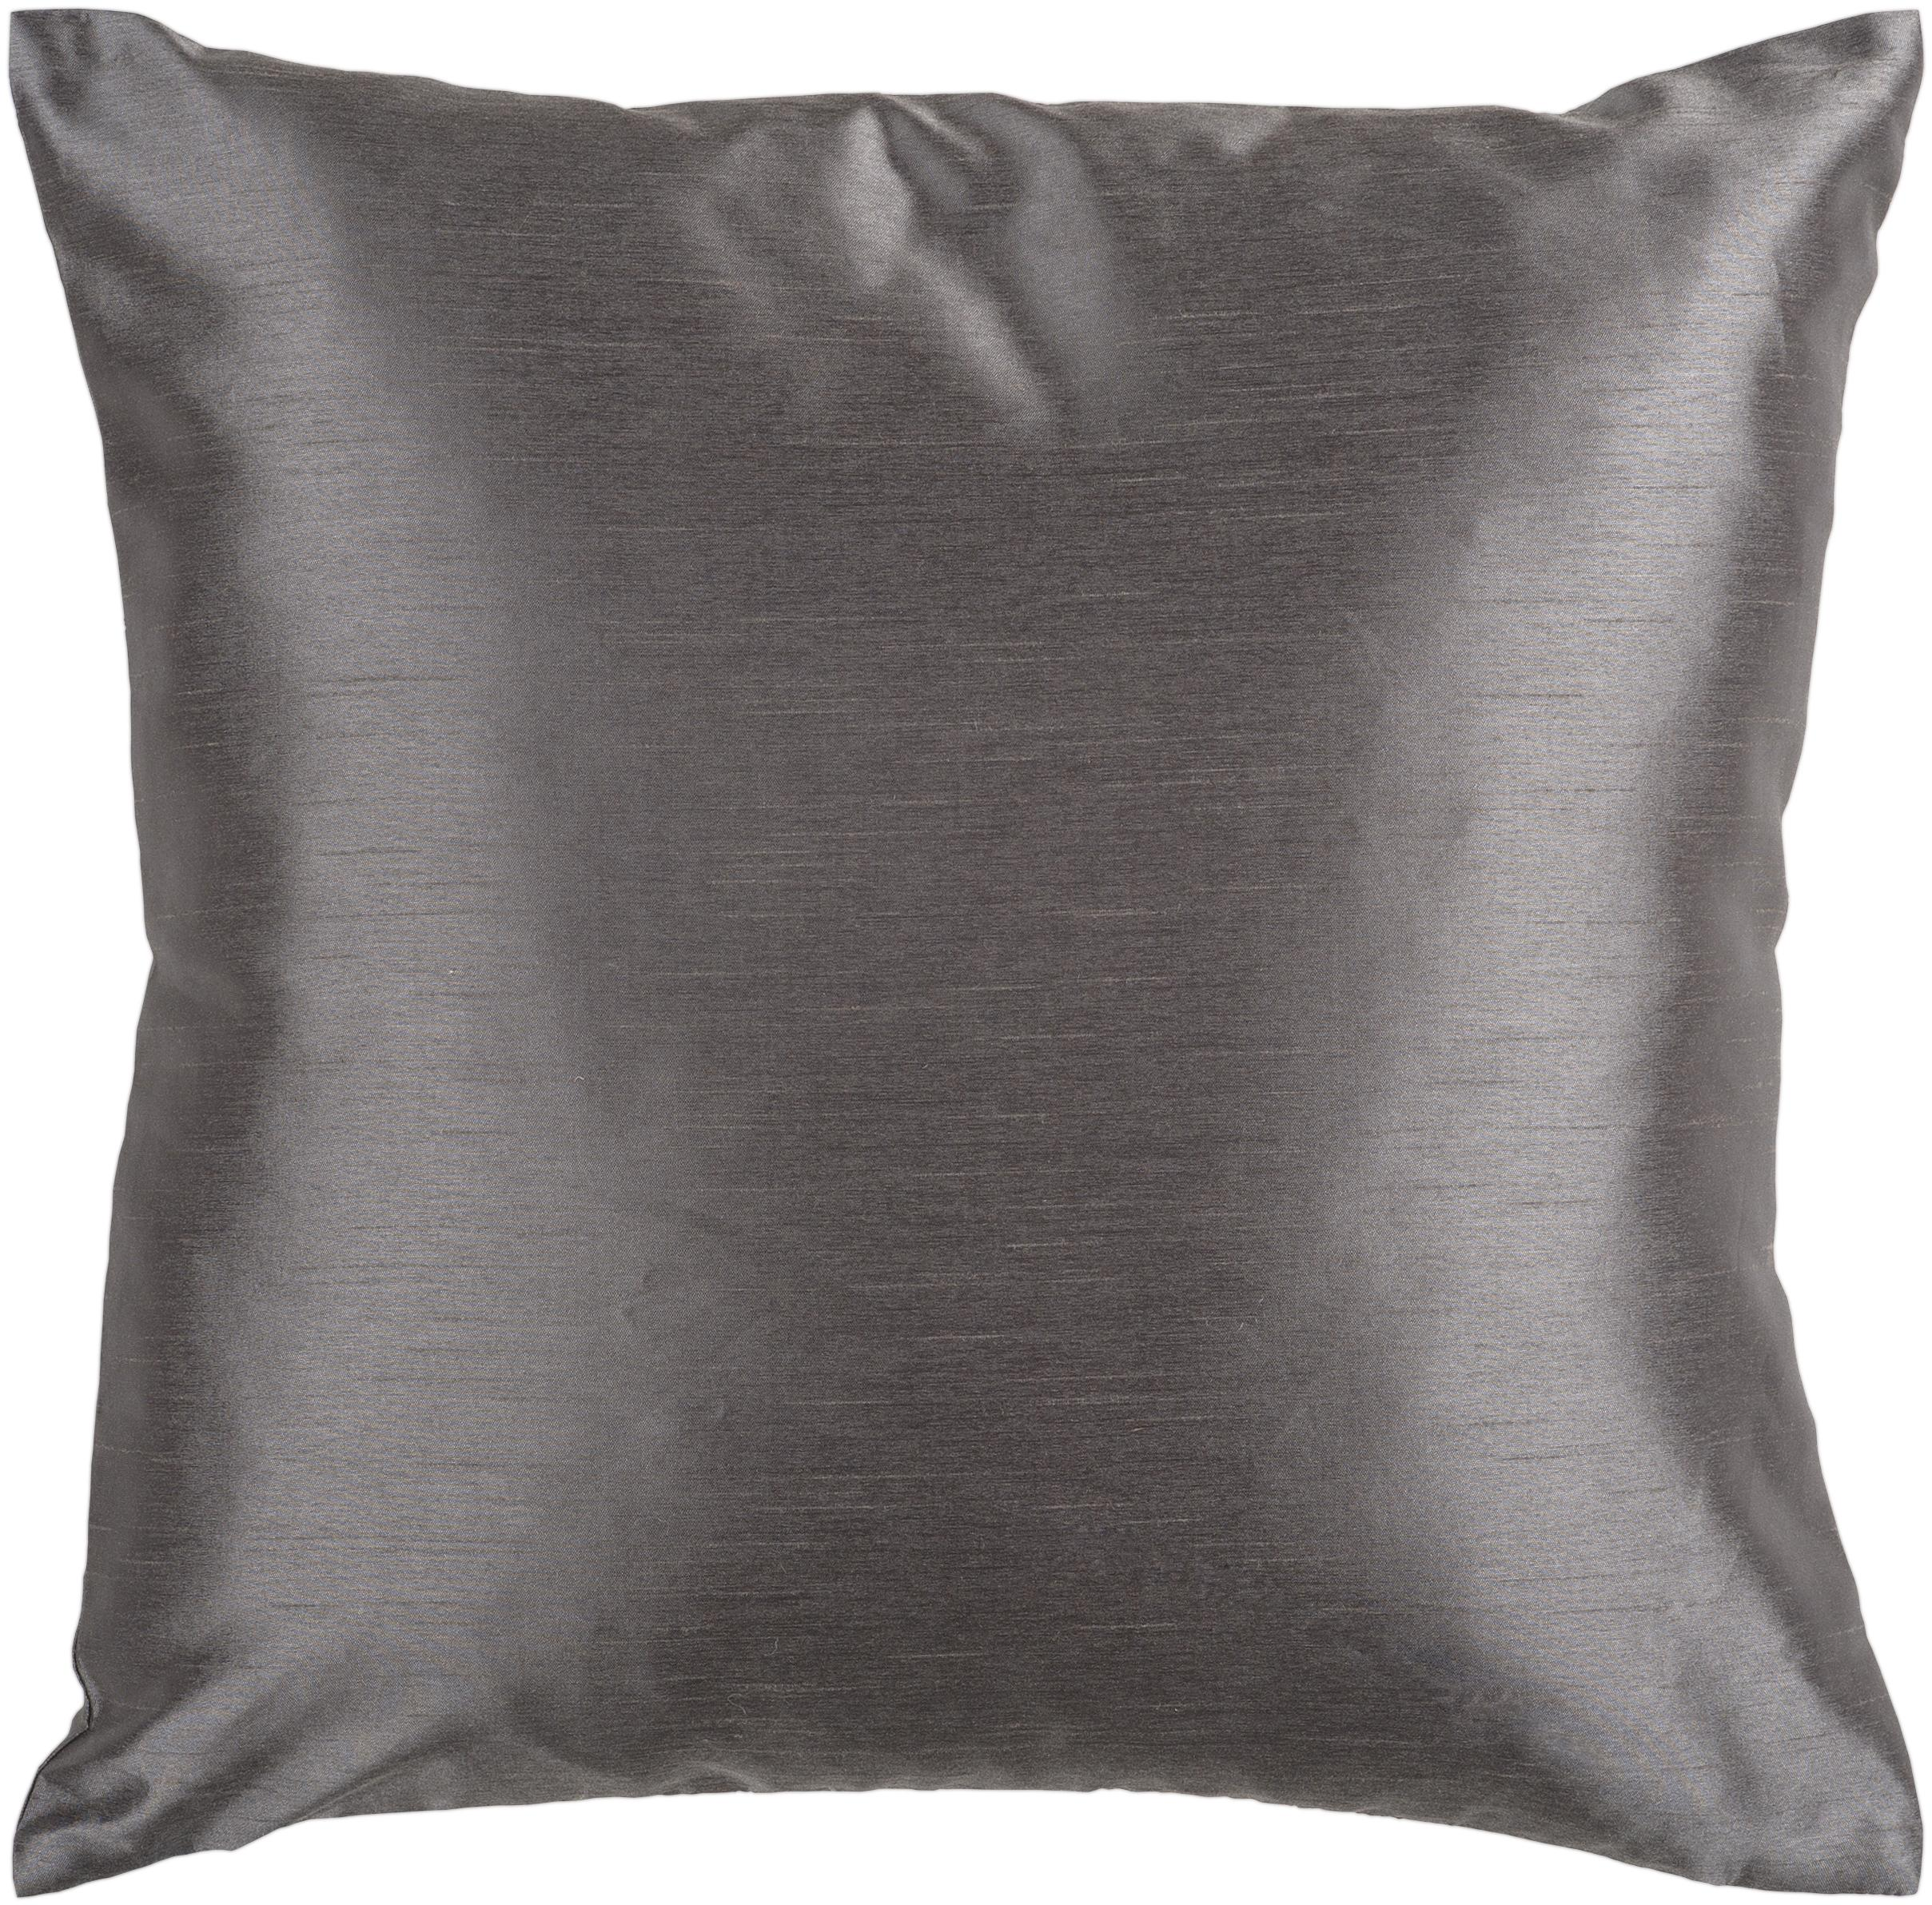 "Pillows 18"" x 18"" Pillow by Surya at Suburban Furniture"